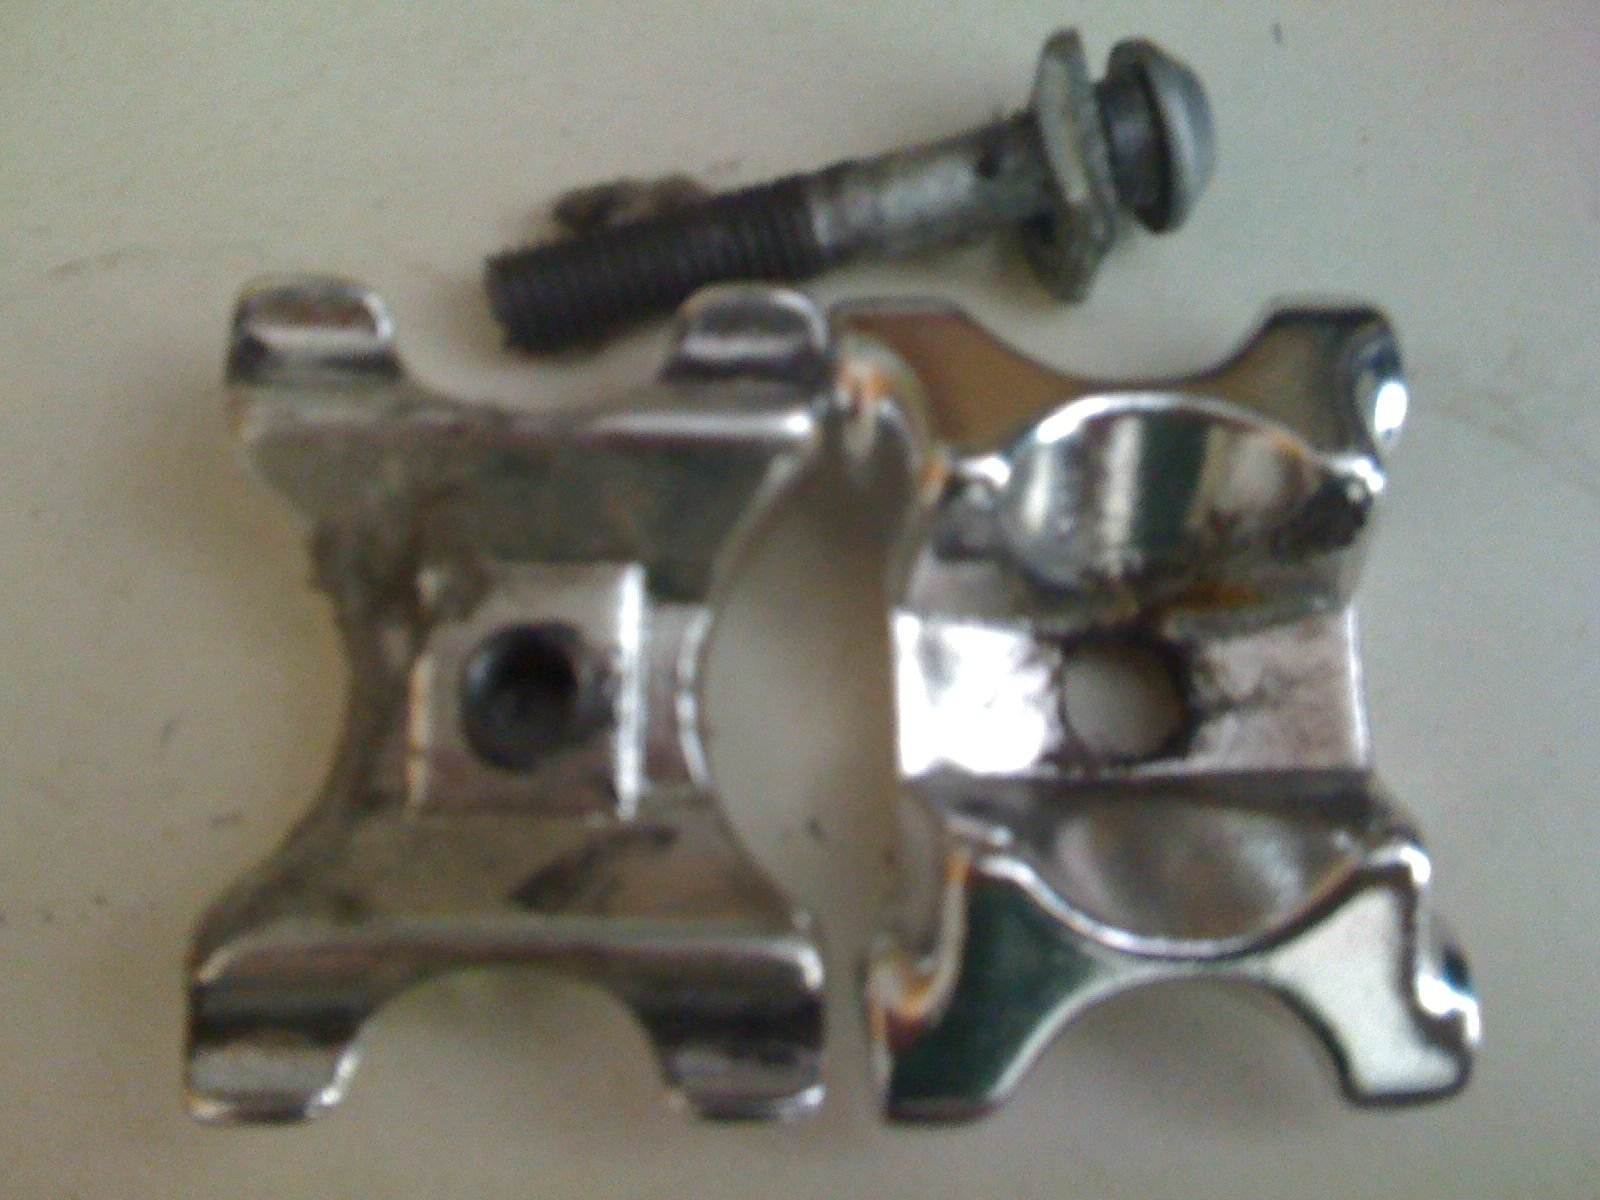 clamp pieces